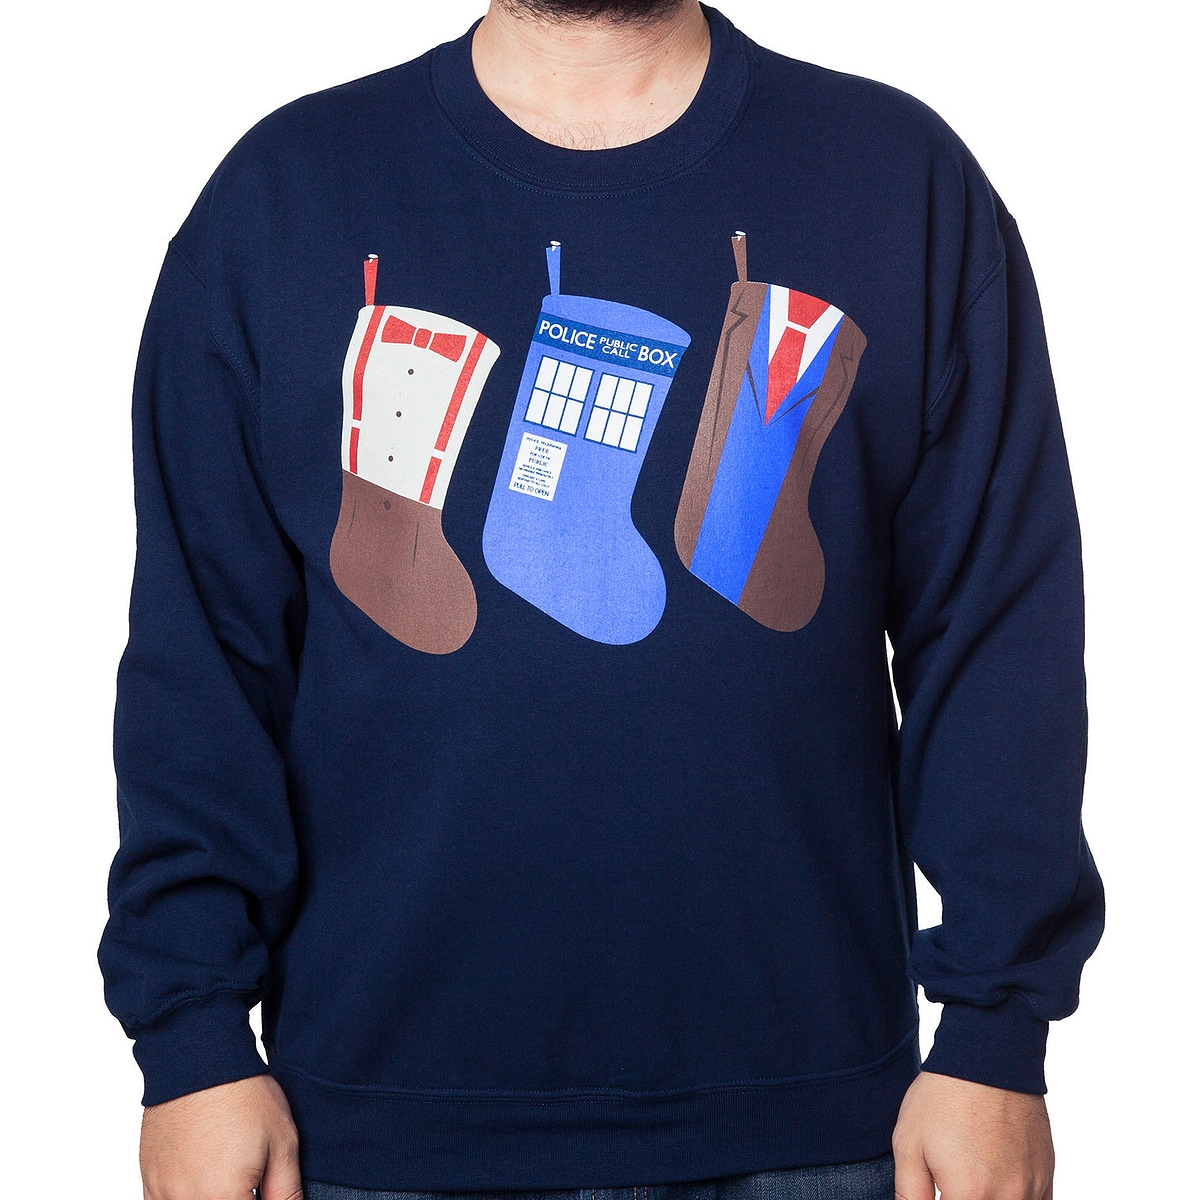 Doctor-Who-Christmas-Stockings-Sweatshirt